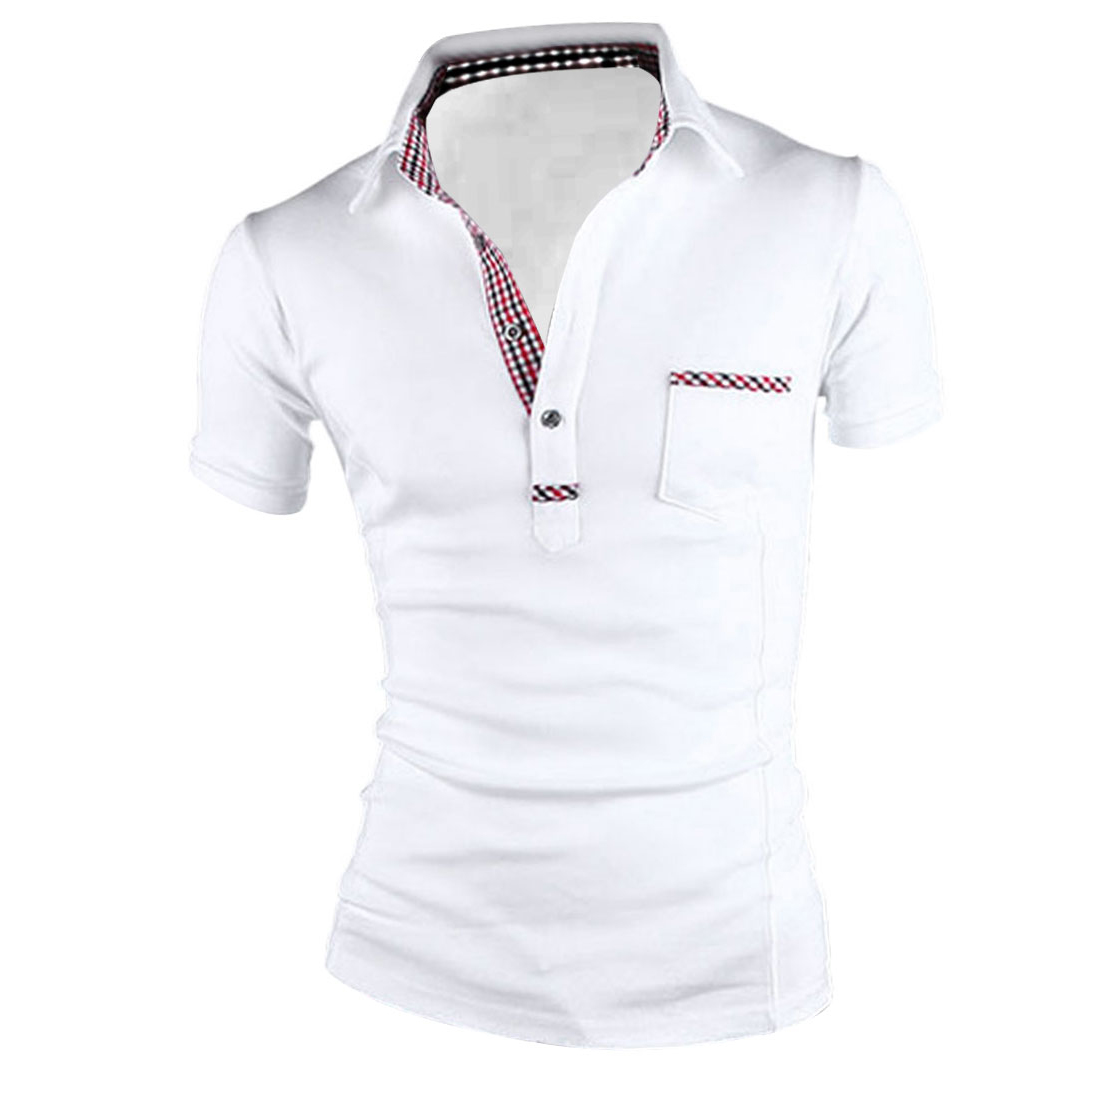 Mens Point Collar Short Sleeved Check Pattern Detail White Polo Shirt M